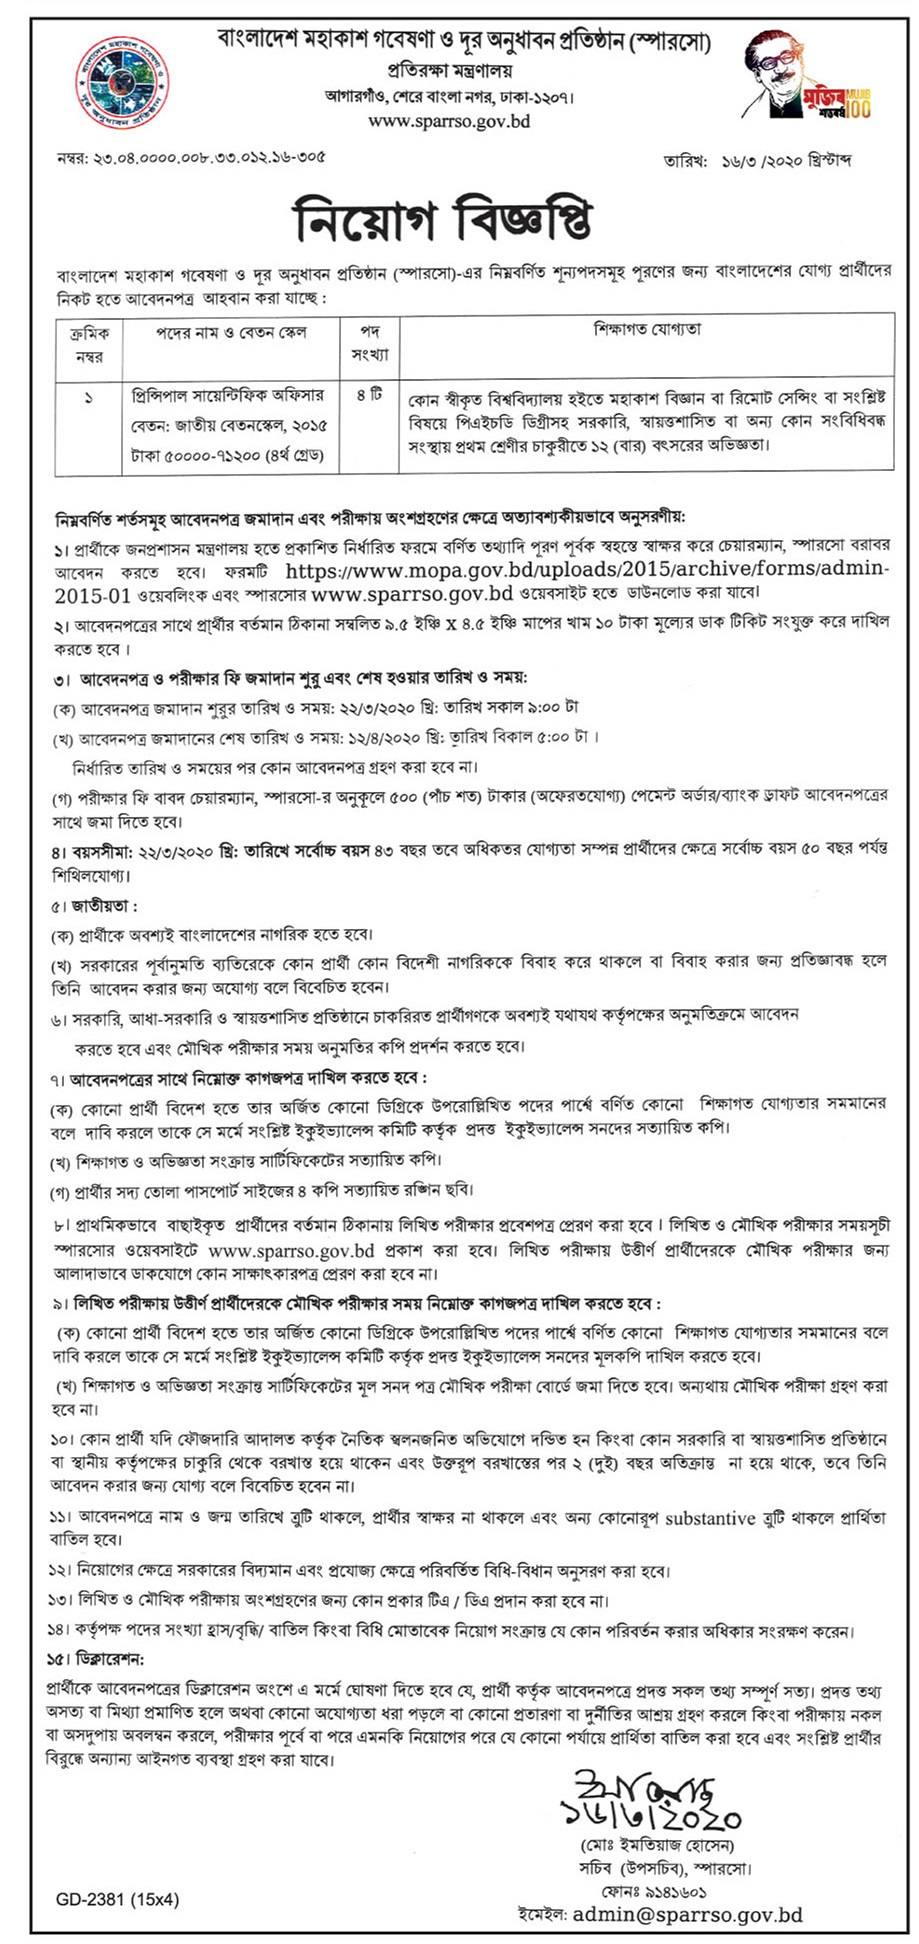 Bangladesh Space Research and Remote Sensing Organization (SPARRSO) Job Circular 2020